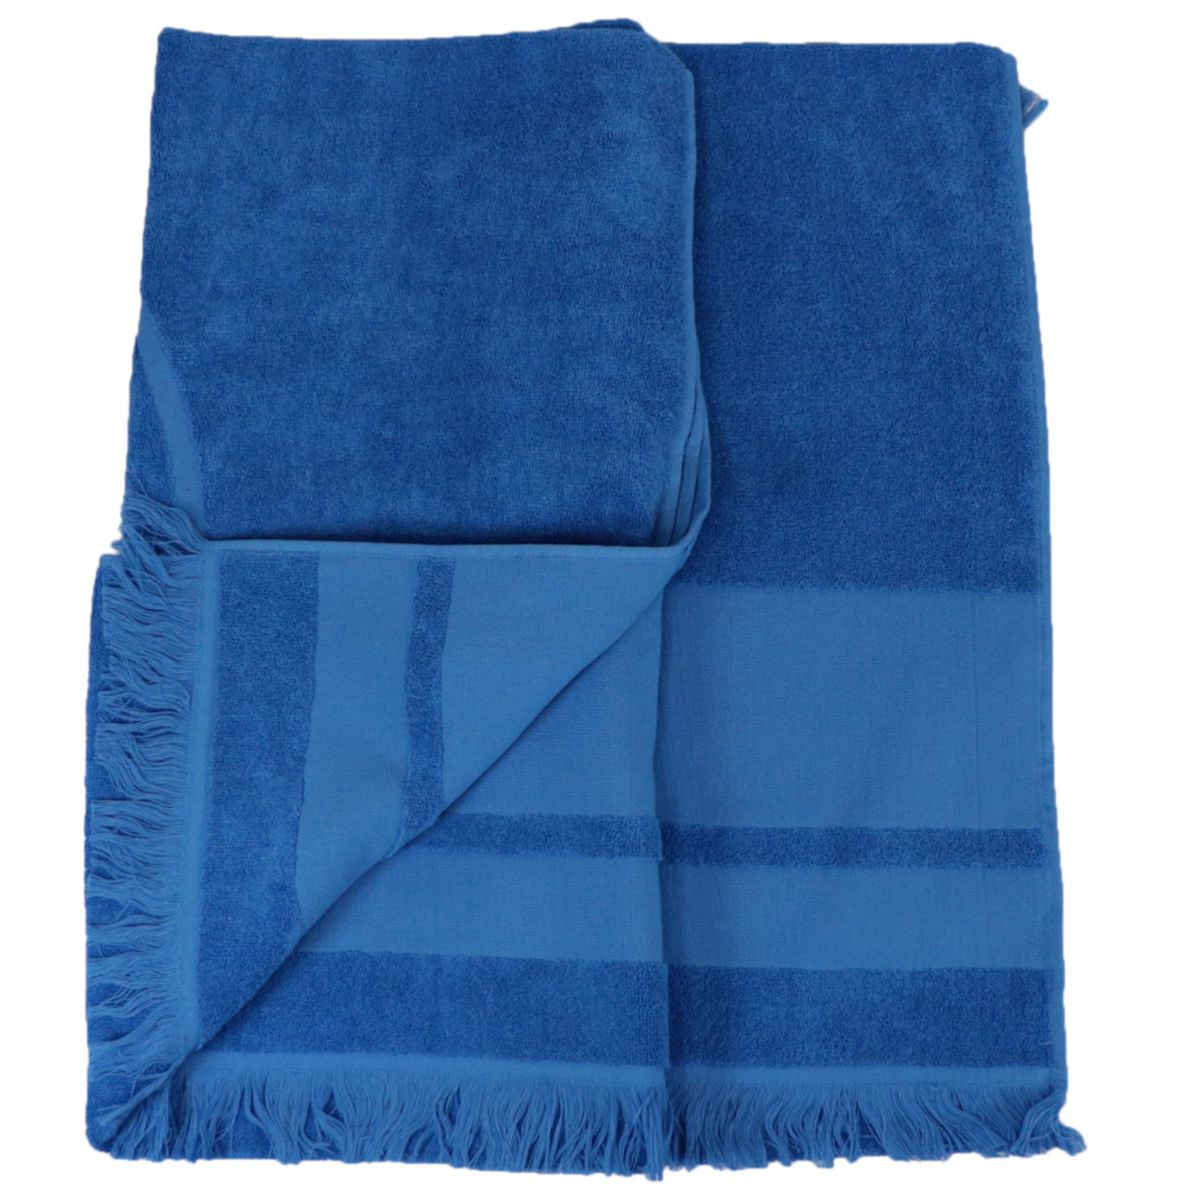 Cotton terry towel with maxi logo Bluette Colmar